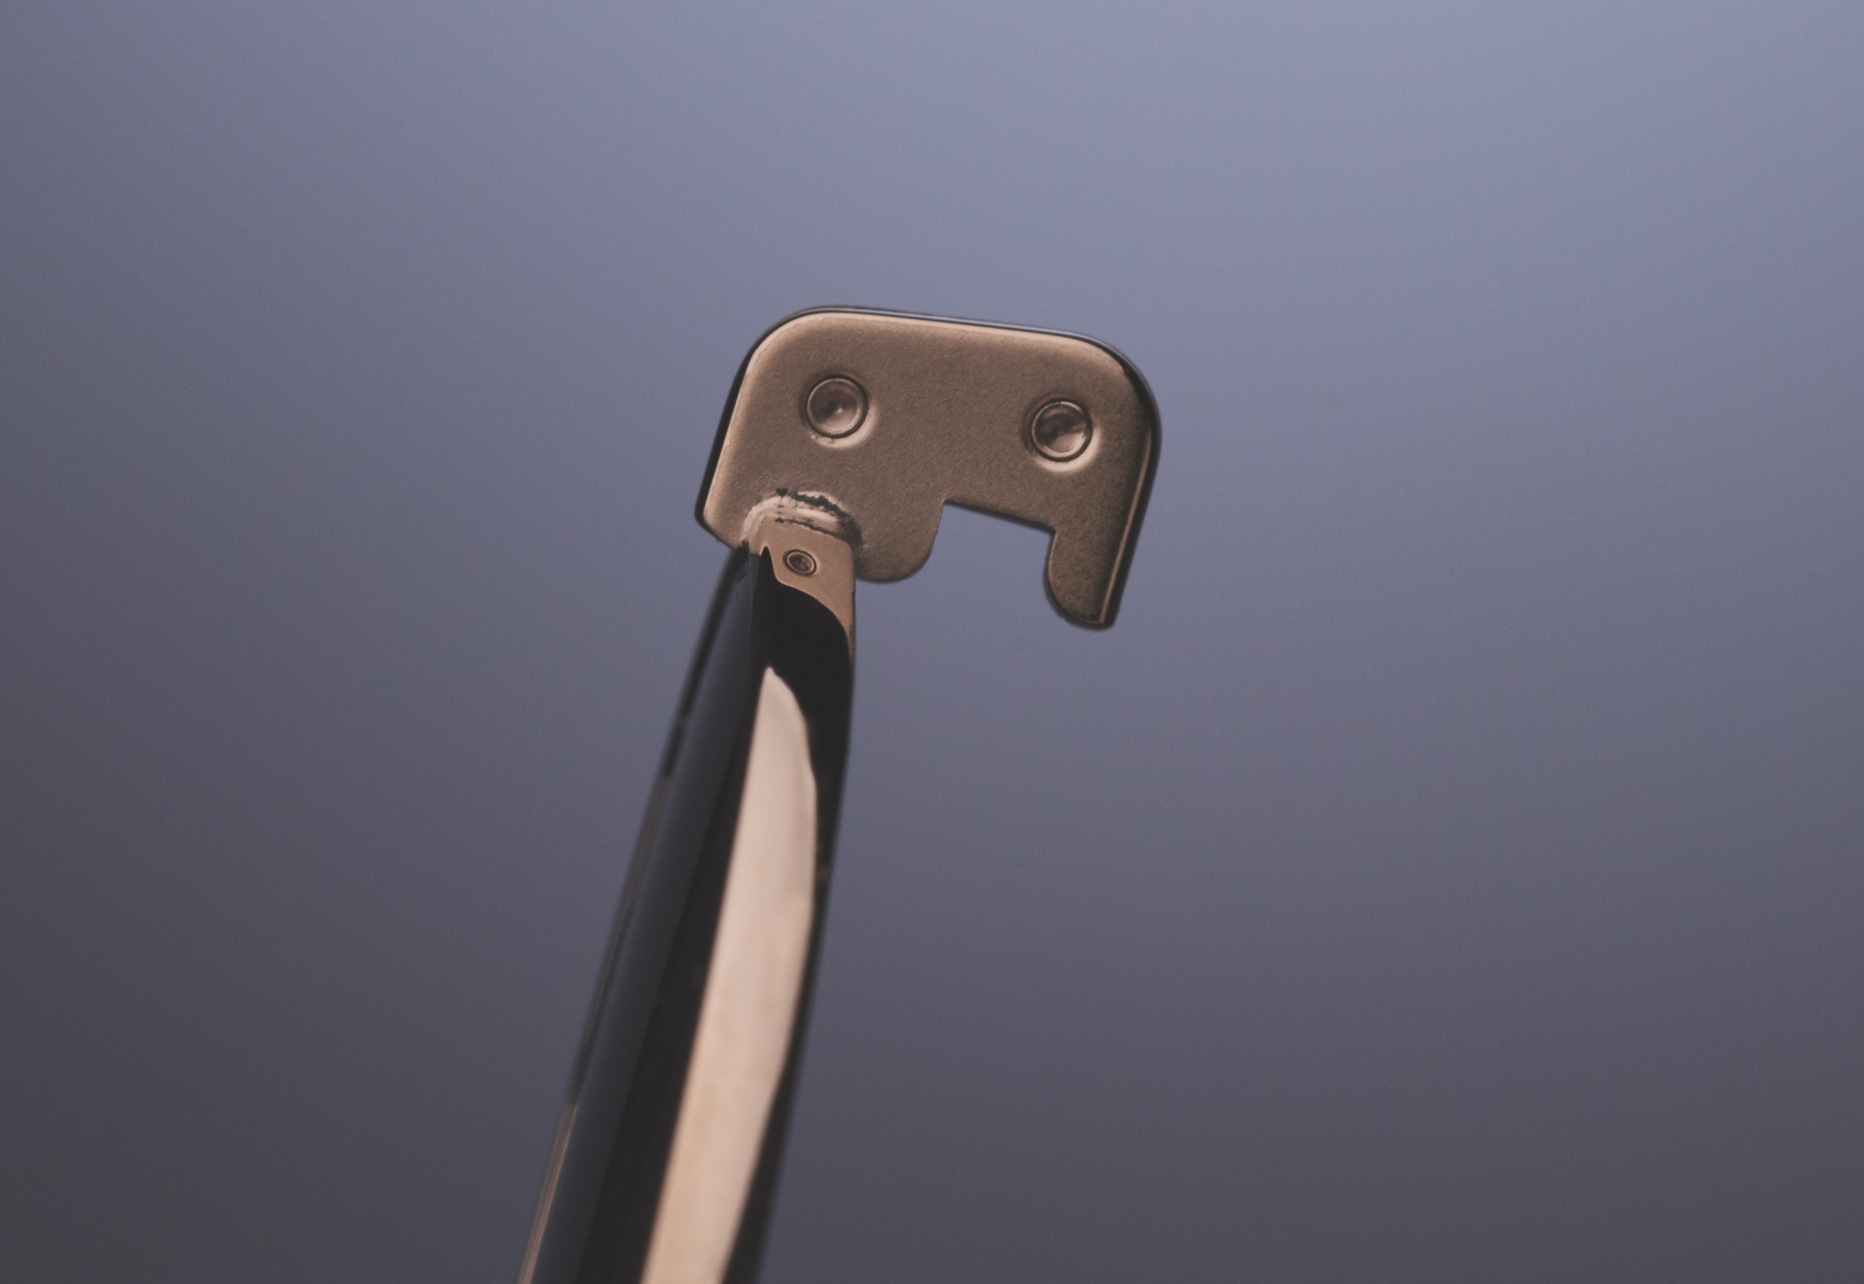 INNOVATIVE DESIGN FEATURING A SINGLE LENS CLIP FOOTING